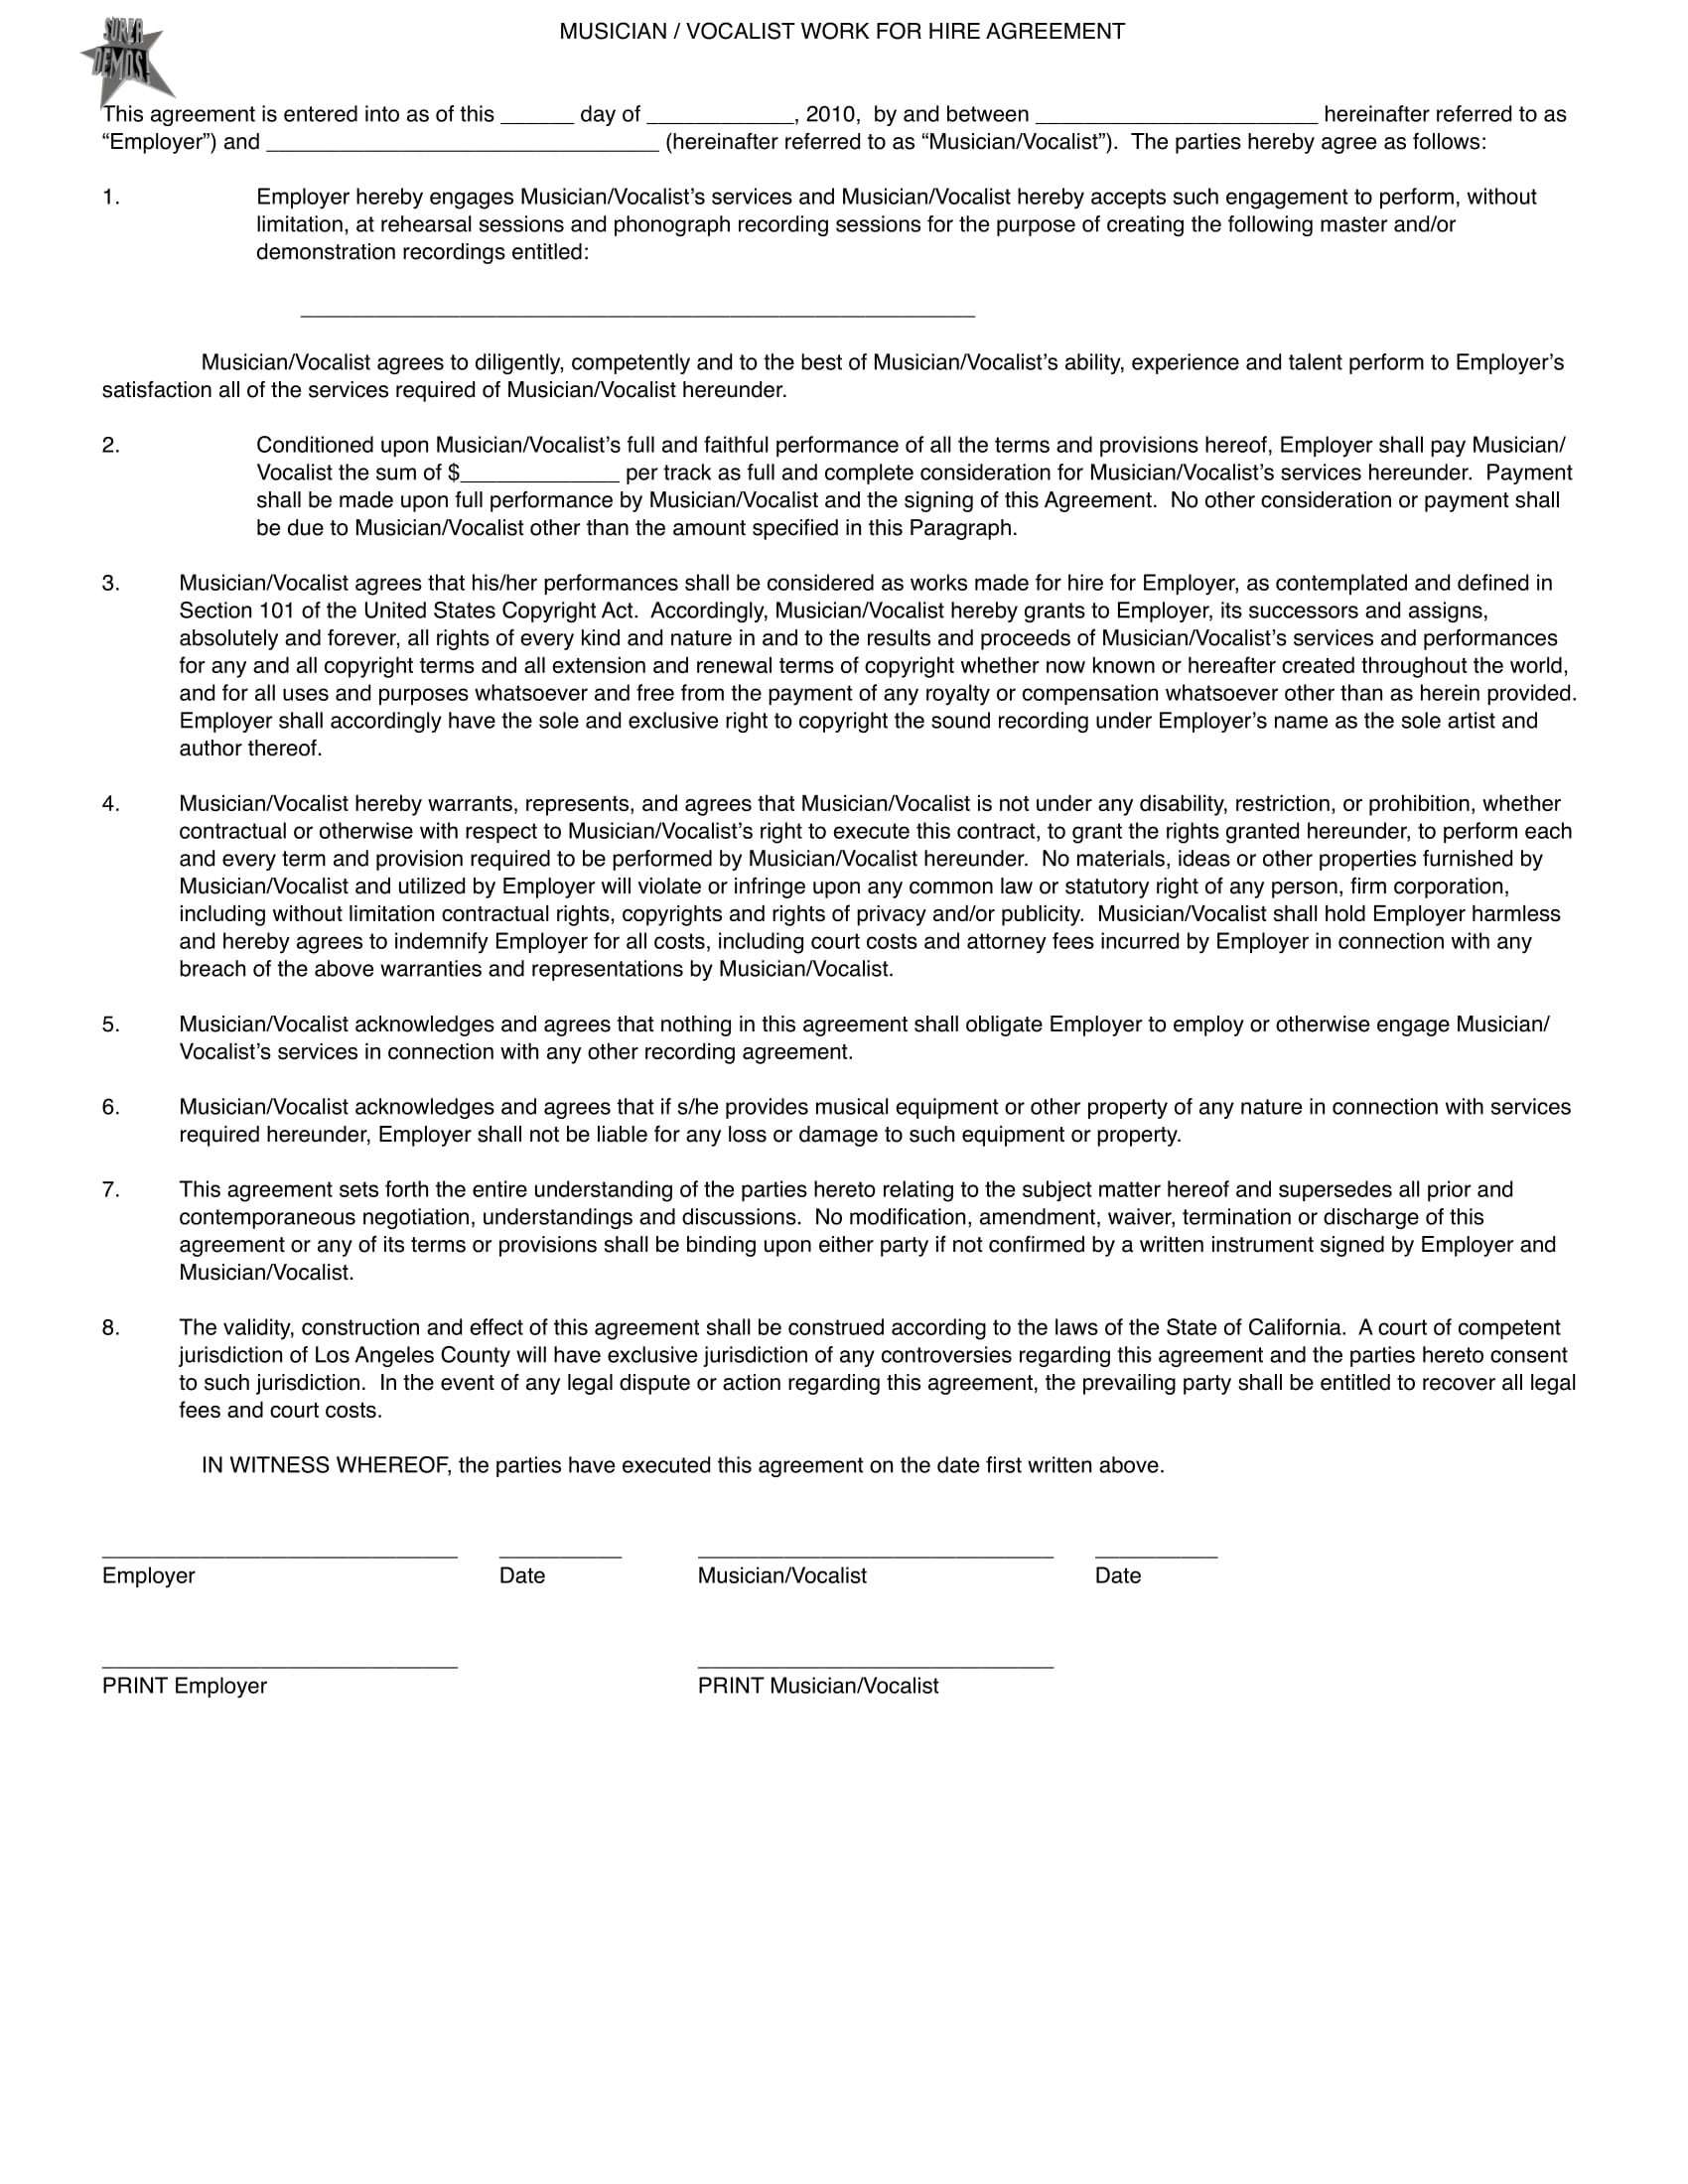 musician work hire agreement contract form 1